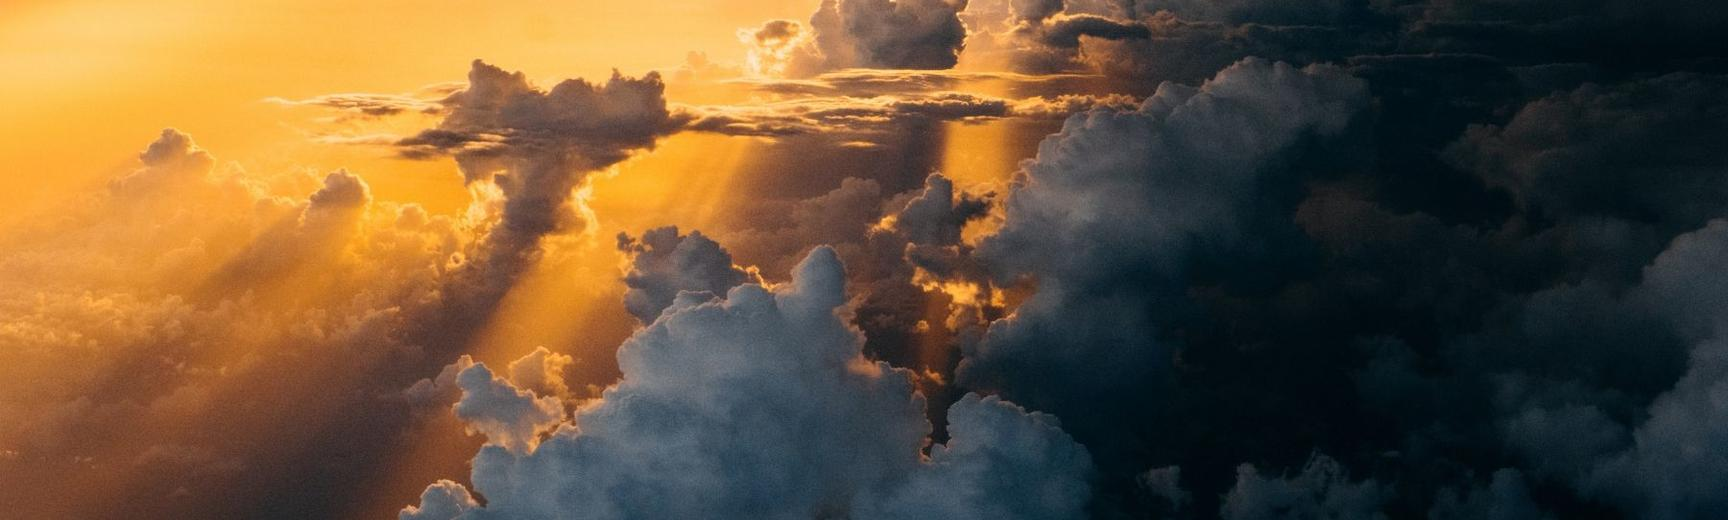 Photo of clouds in a sunset